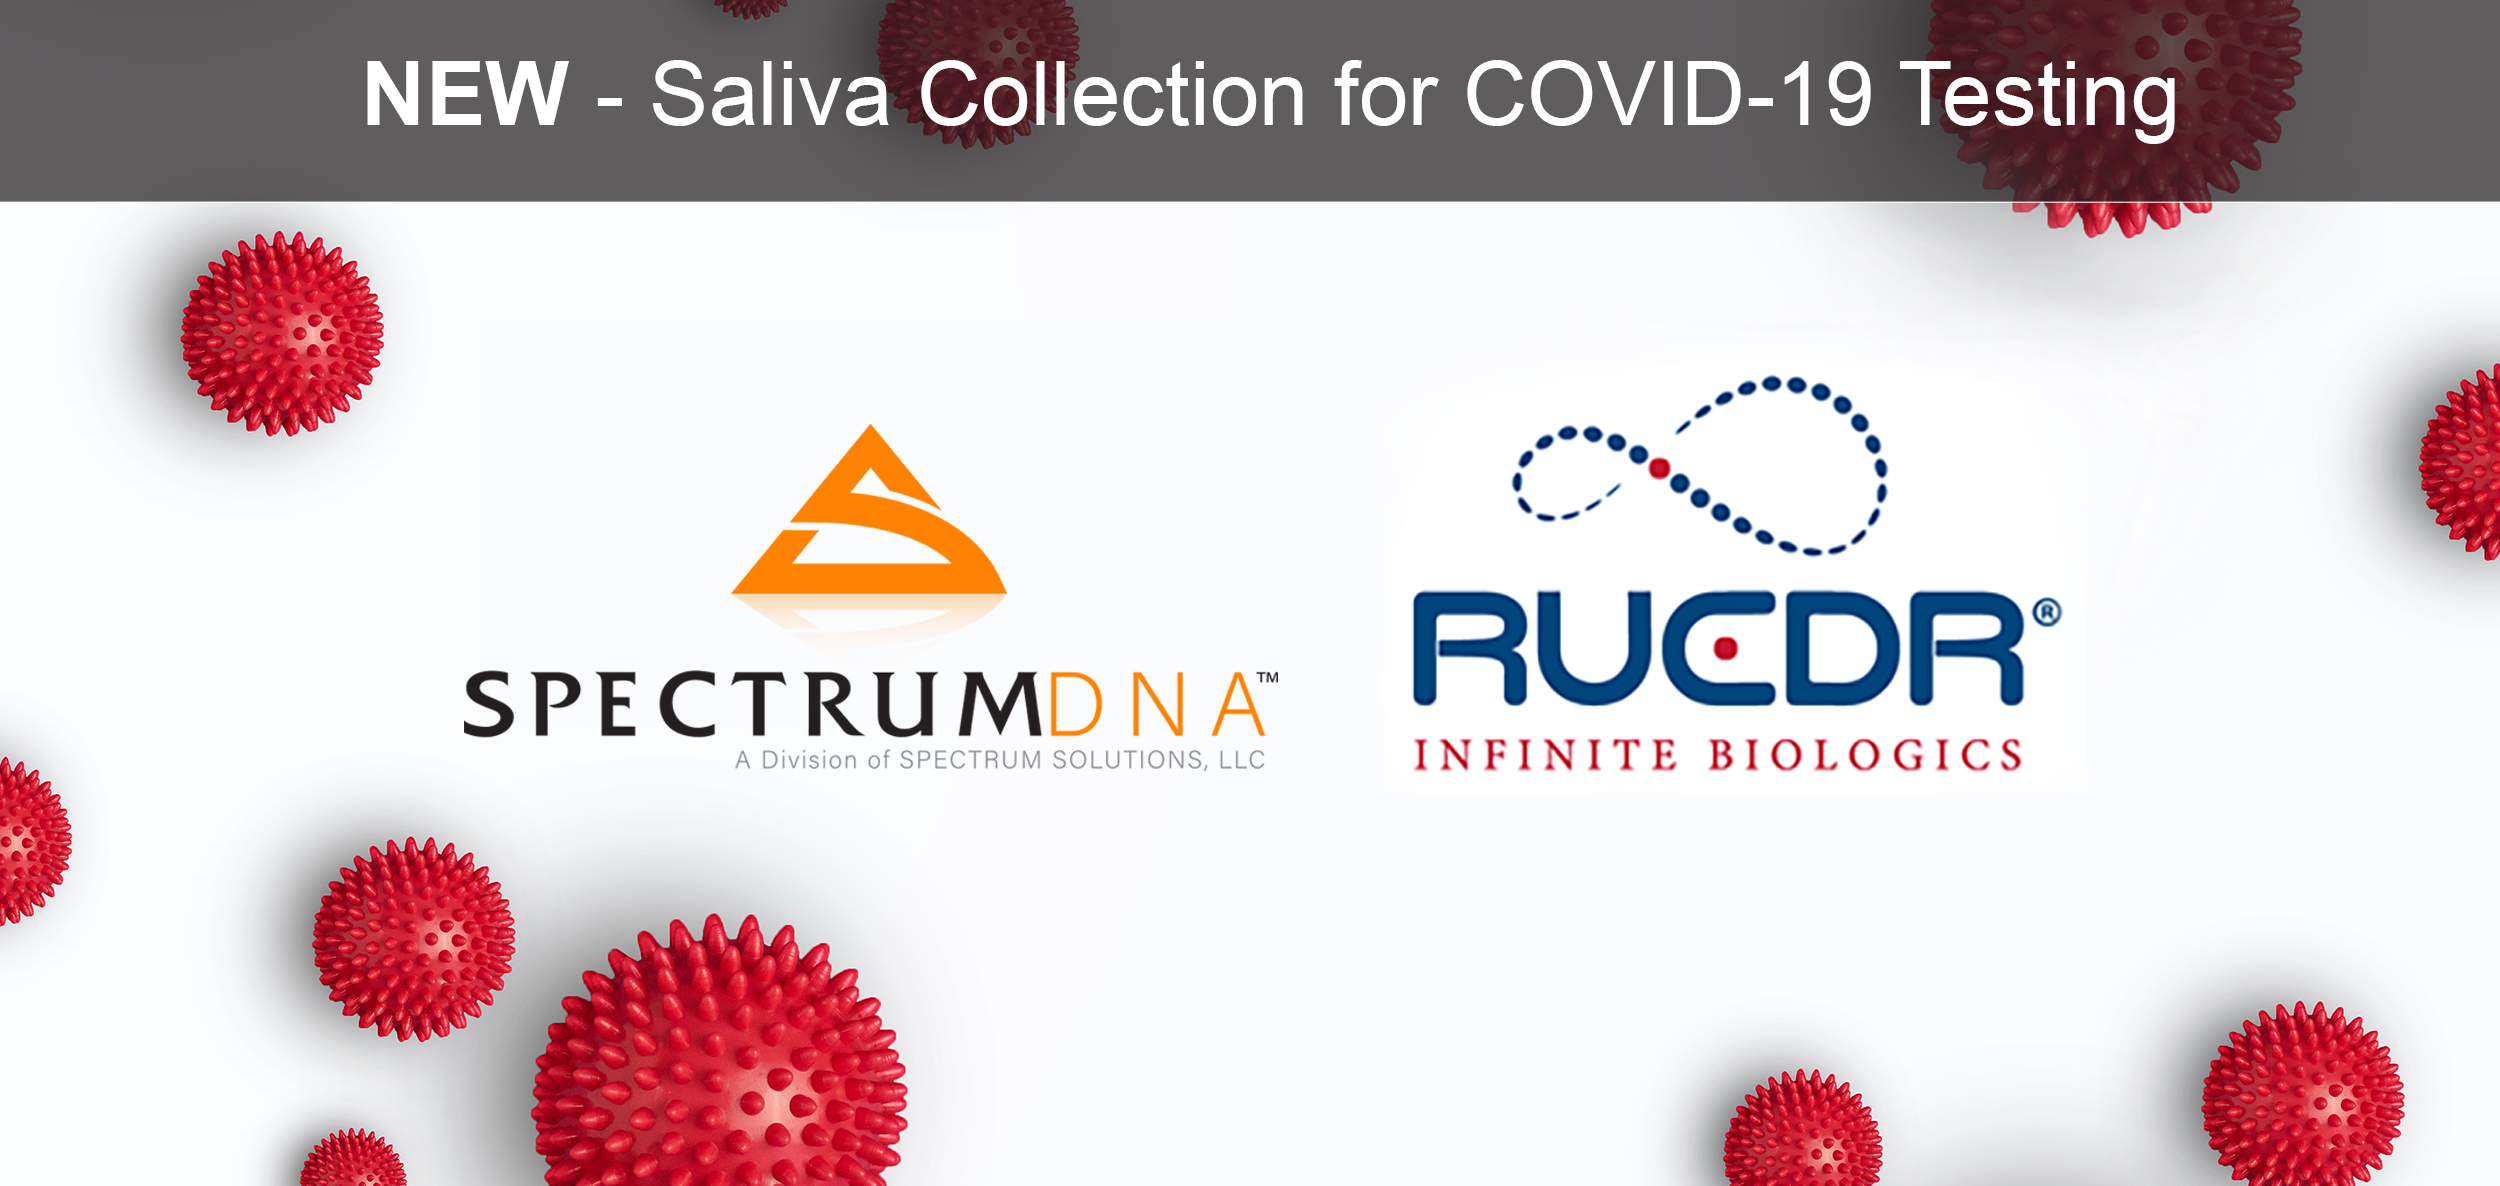 Spectrum Solutions and RUDCR Discover Saliva biosample collection replacement for swab